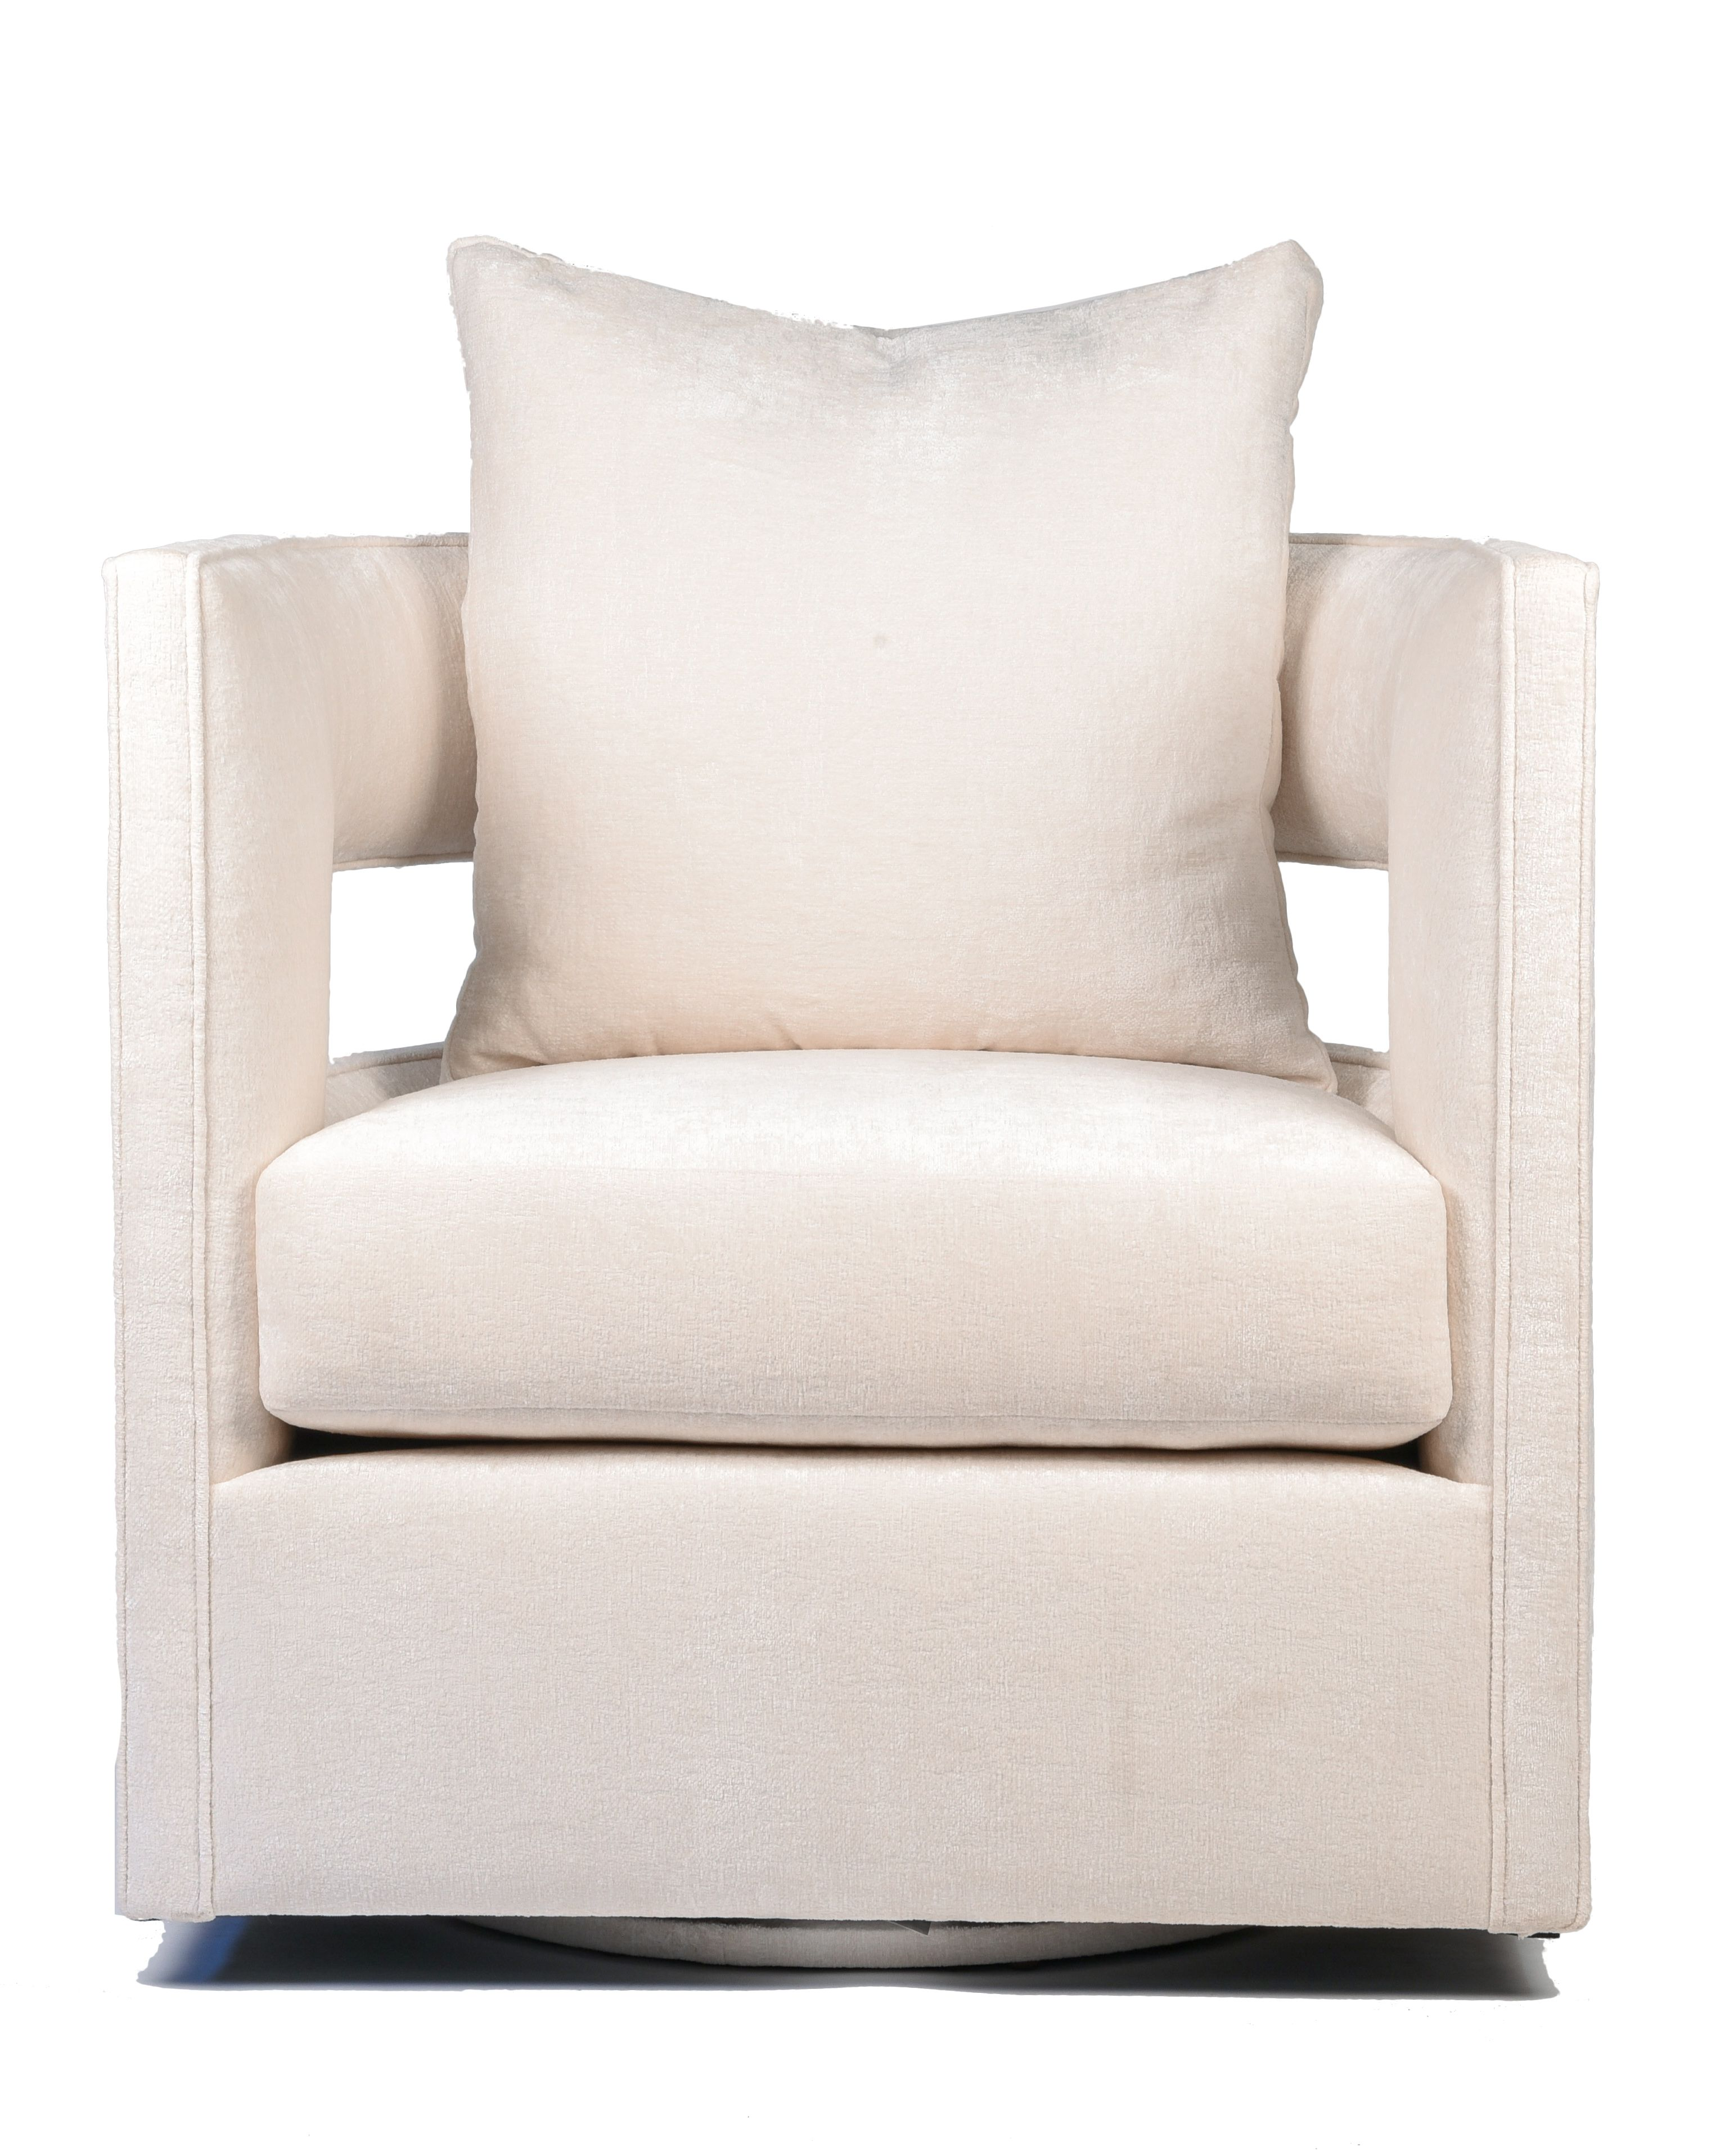 White Swivel Chair With Cutout Back Custom Upholstery Sold At Blue Print Blueprintstore Com Furniture Boutique White Swivel Chairs Furniture